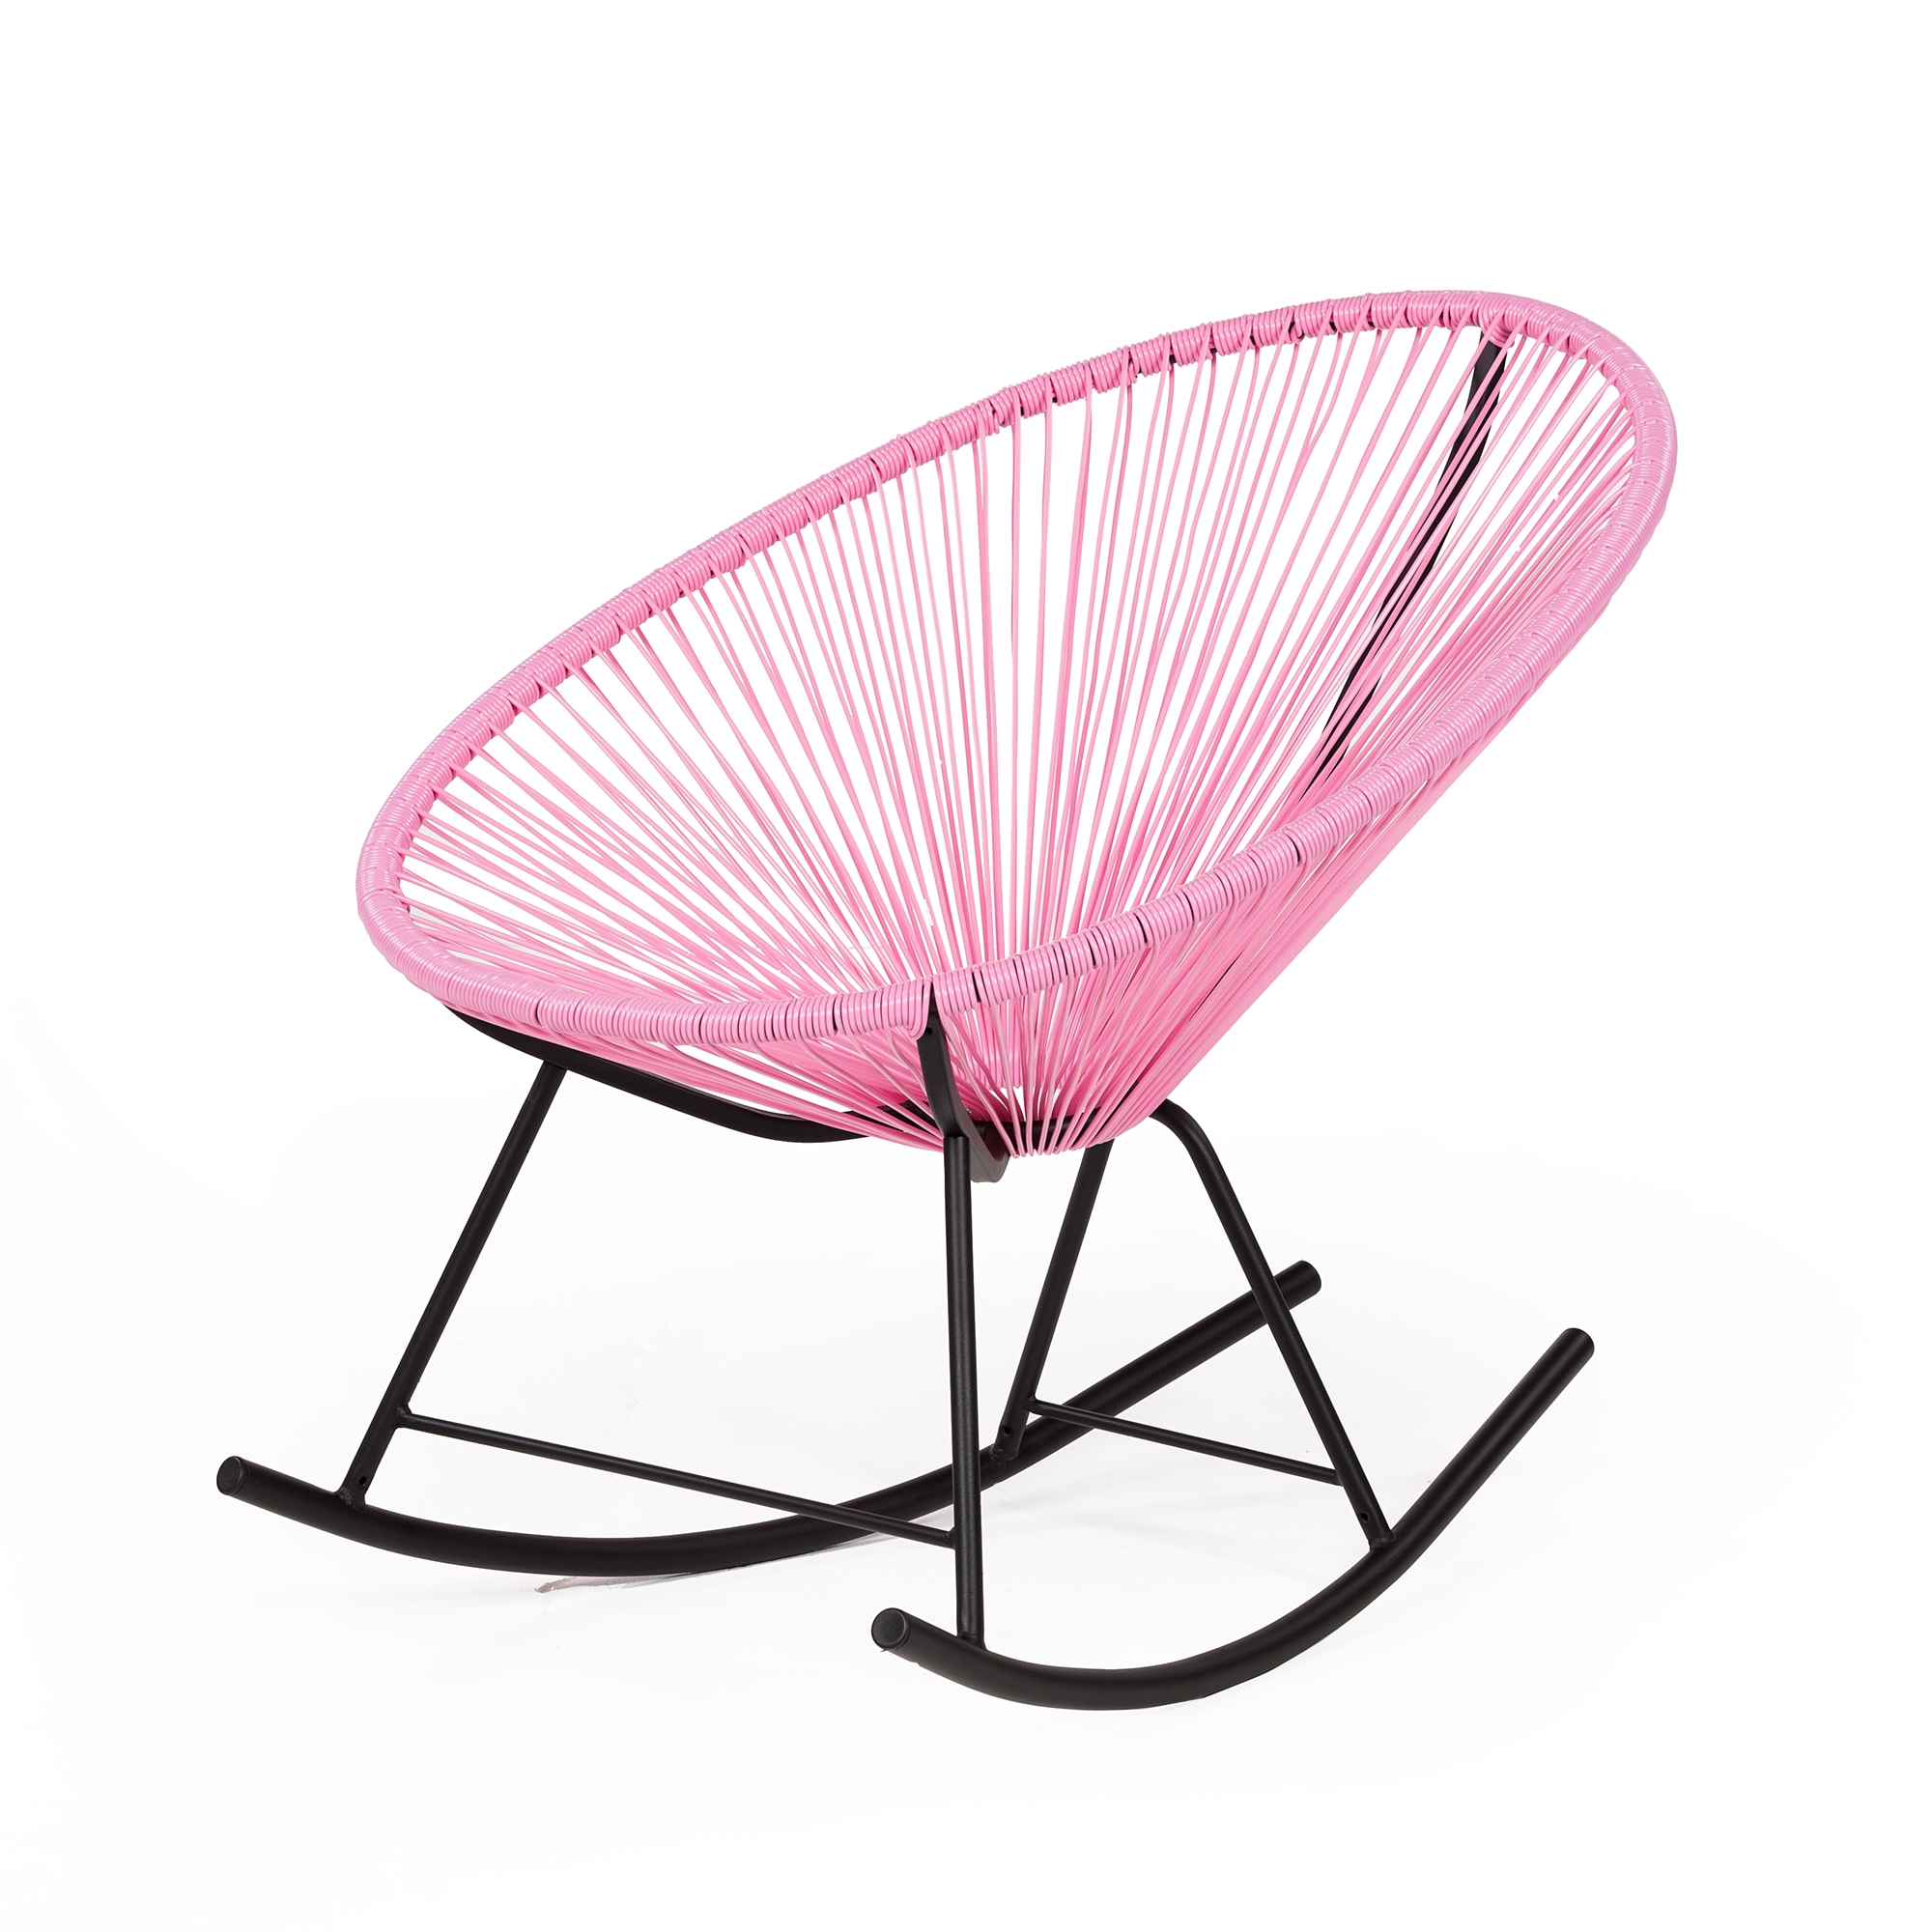 Outstanding Acapulco Rocking Chair Pink Ibusinesslaw Wood Chair Design Ideas Ibusinesslaworg